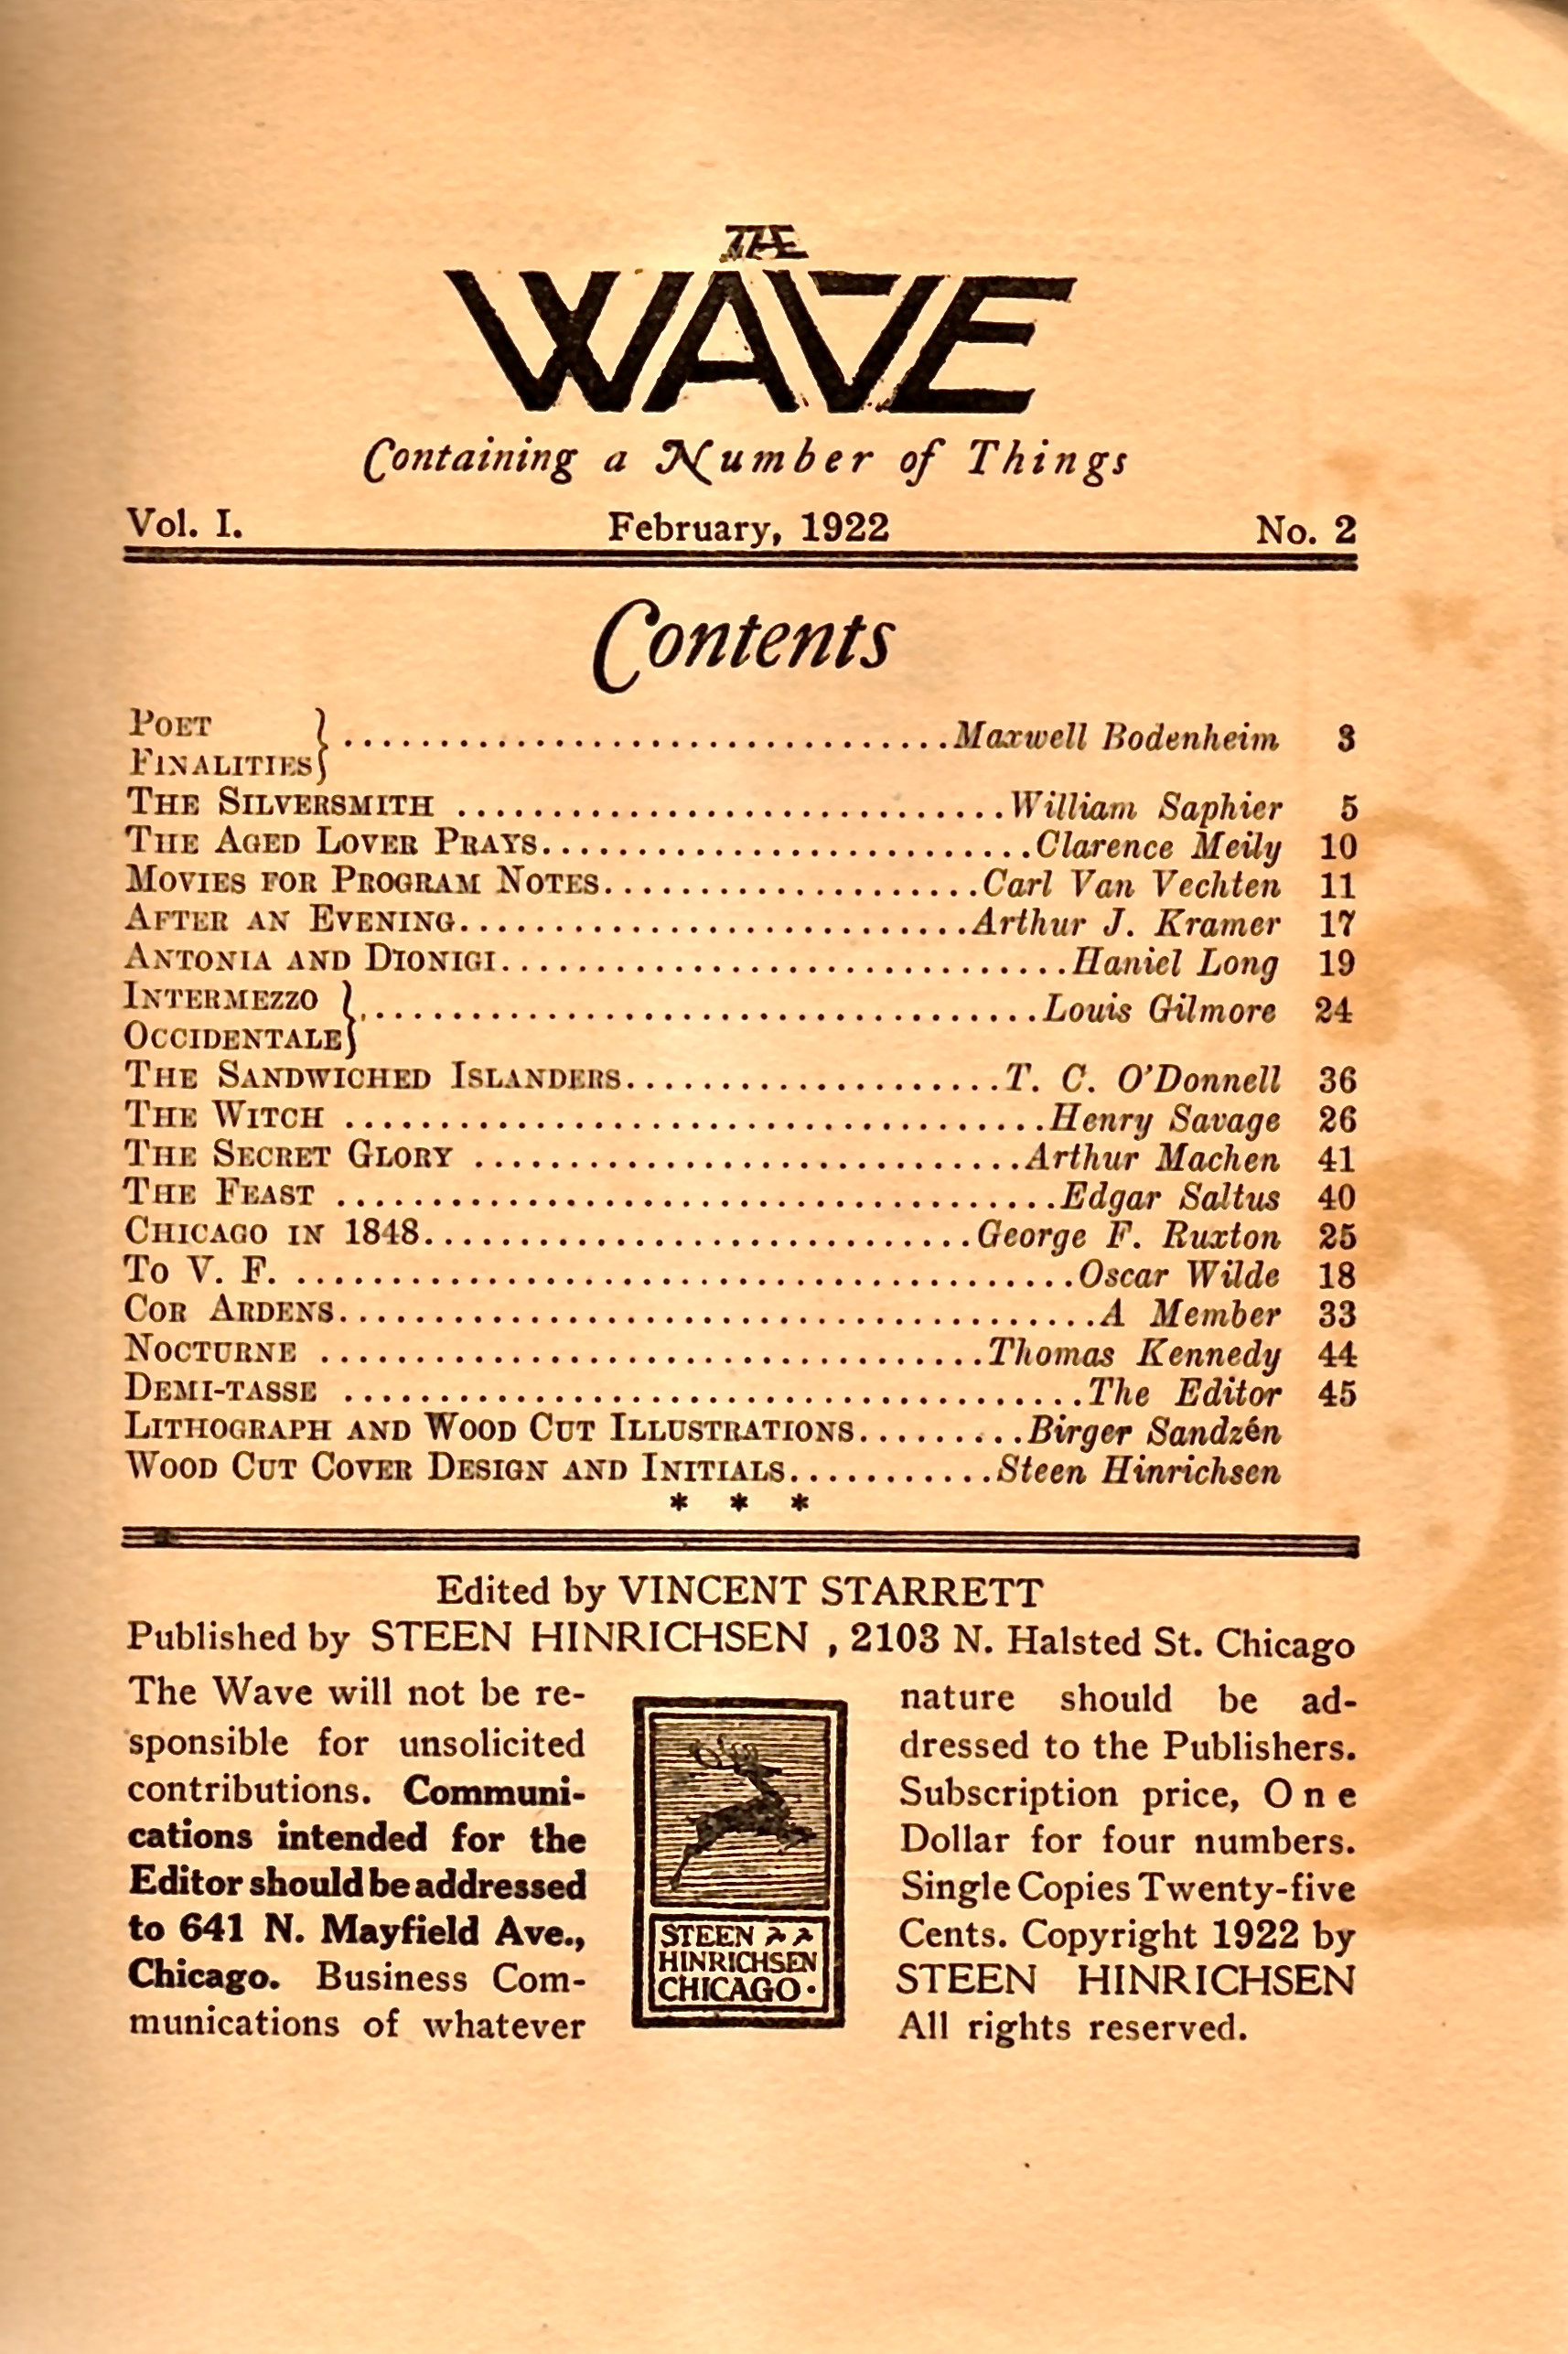 The Contents page for the February 1922 number of  The Wave .